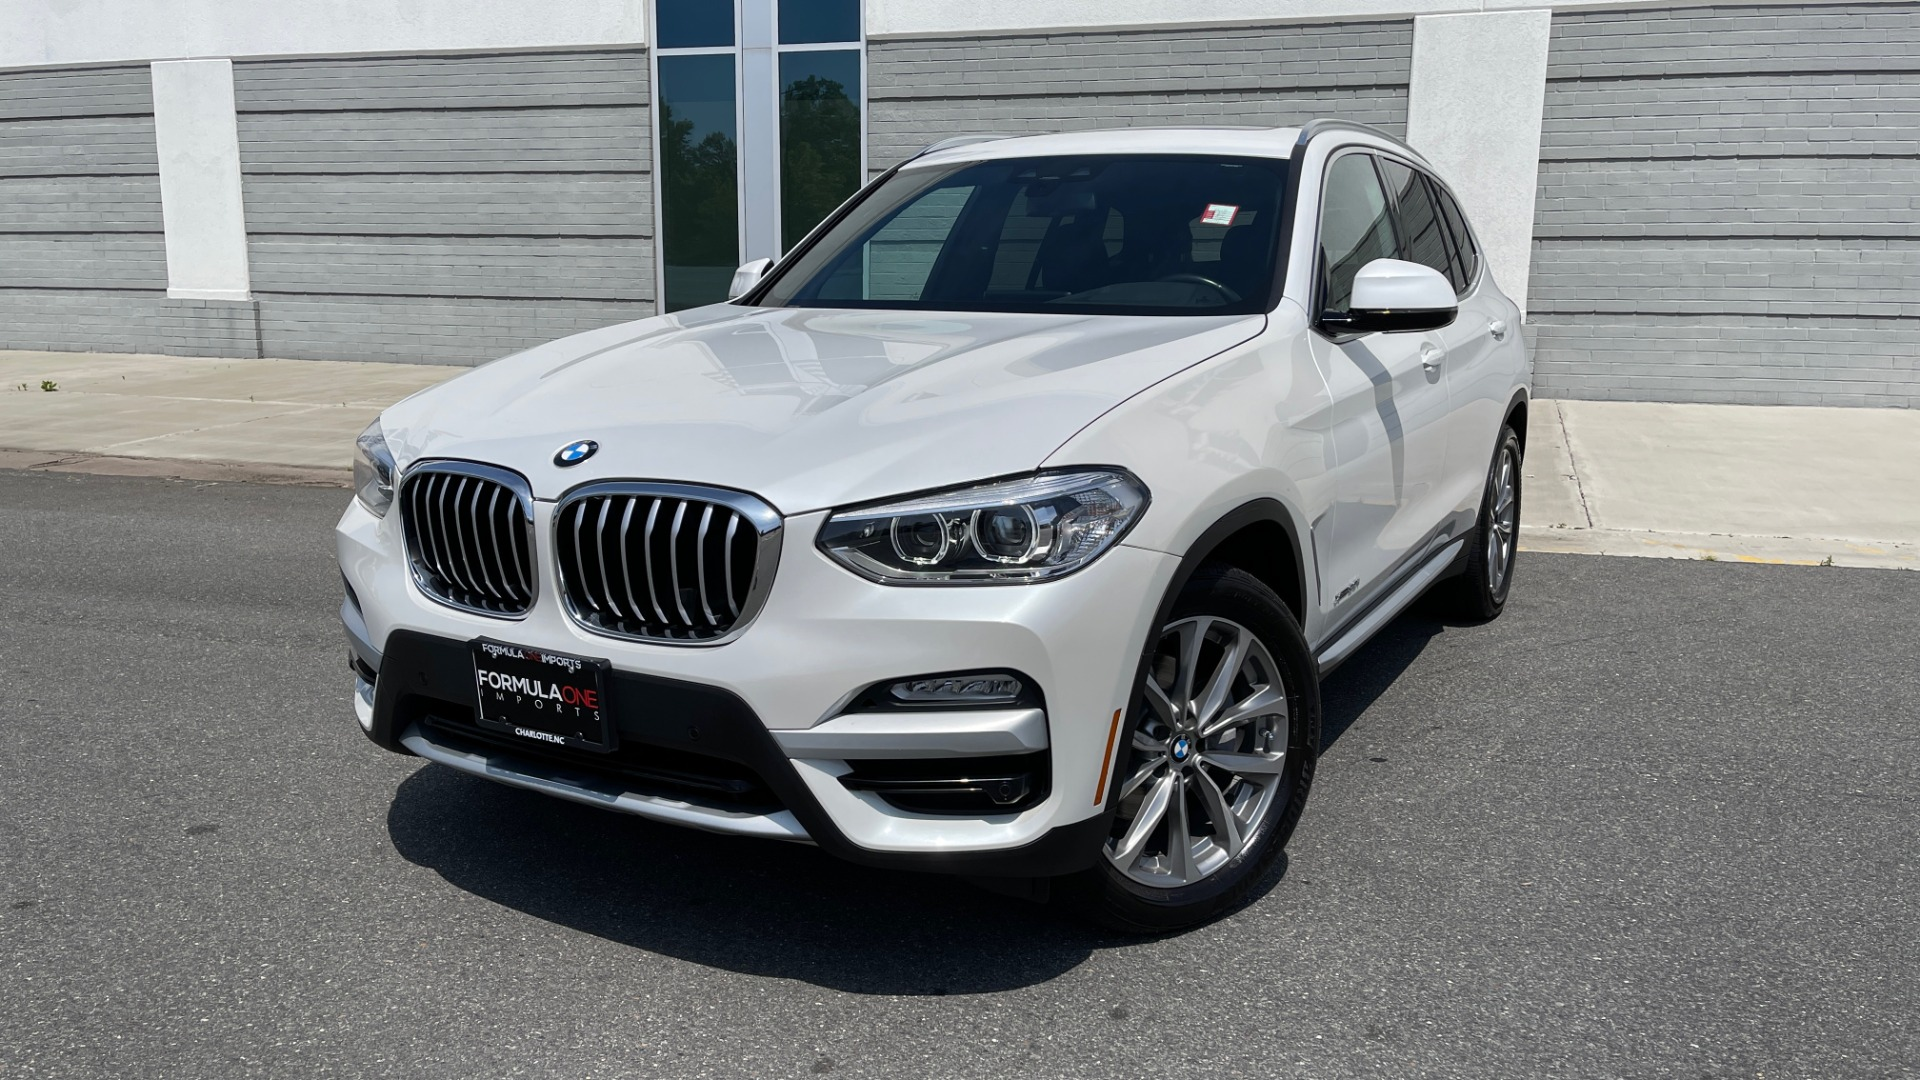 Used 2018 BMW X3 XDRIVE30I PREMIUM / NAV / DRVR ASST / CONV PKG / SUNROOF / REARVIEW for sale $32,695 at Formula Imports in Charlotte NC 28227 1